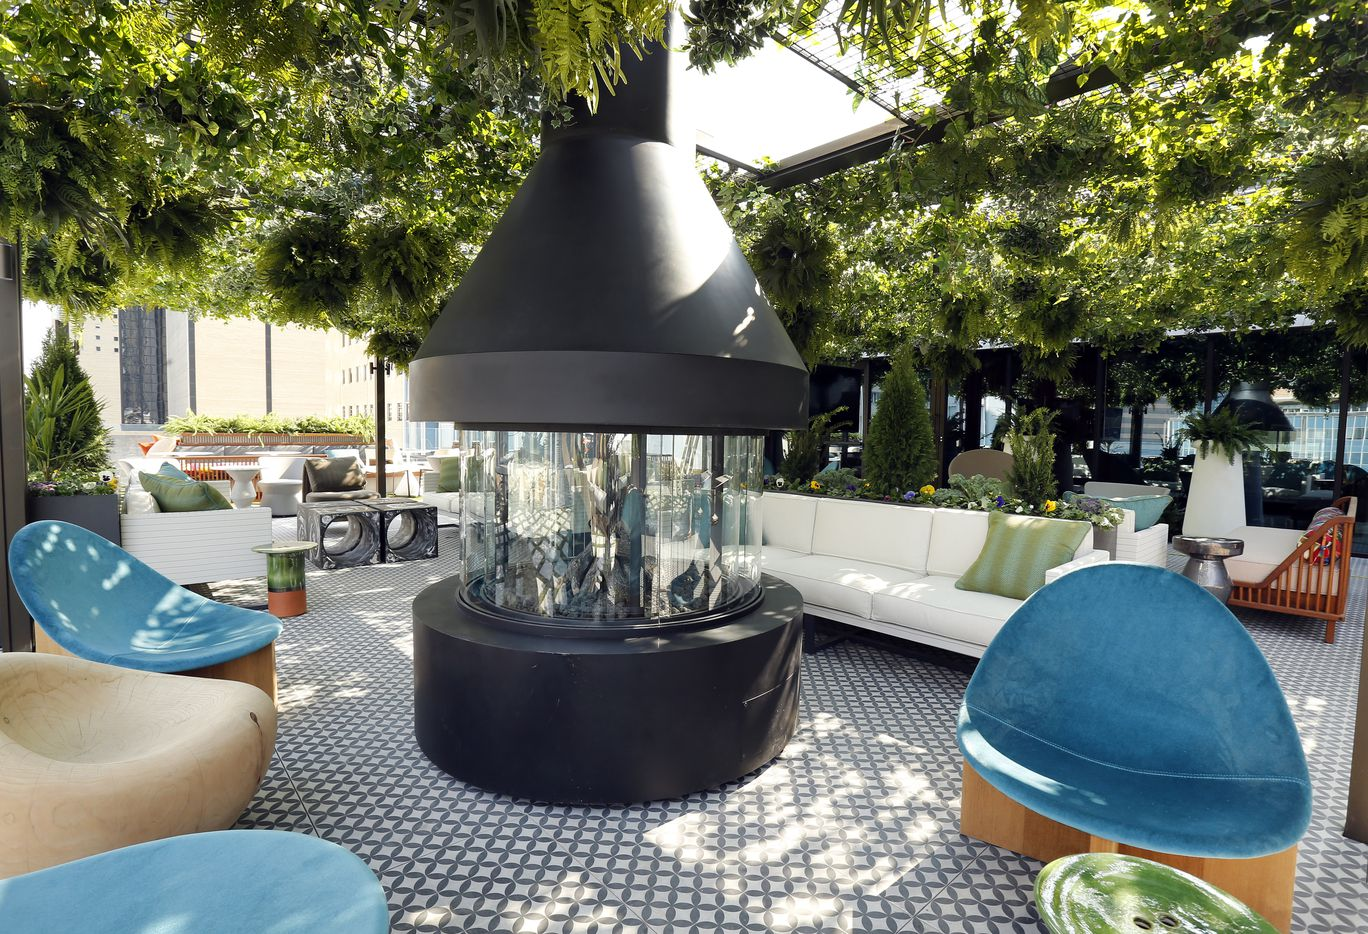 There's large fireplace and funky furniture on the Catbird's outdoor patio area.